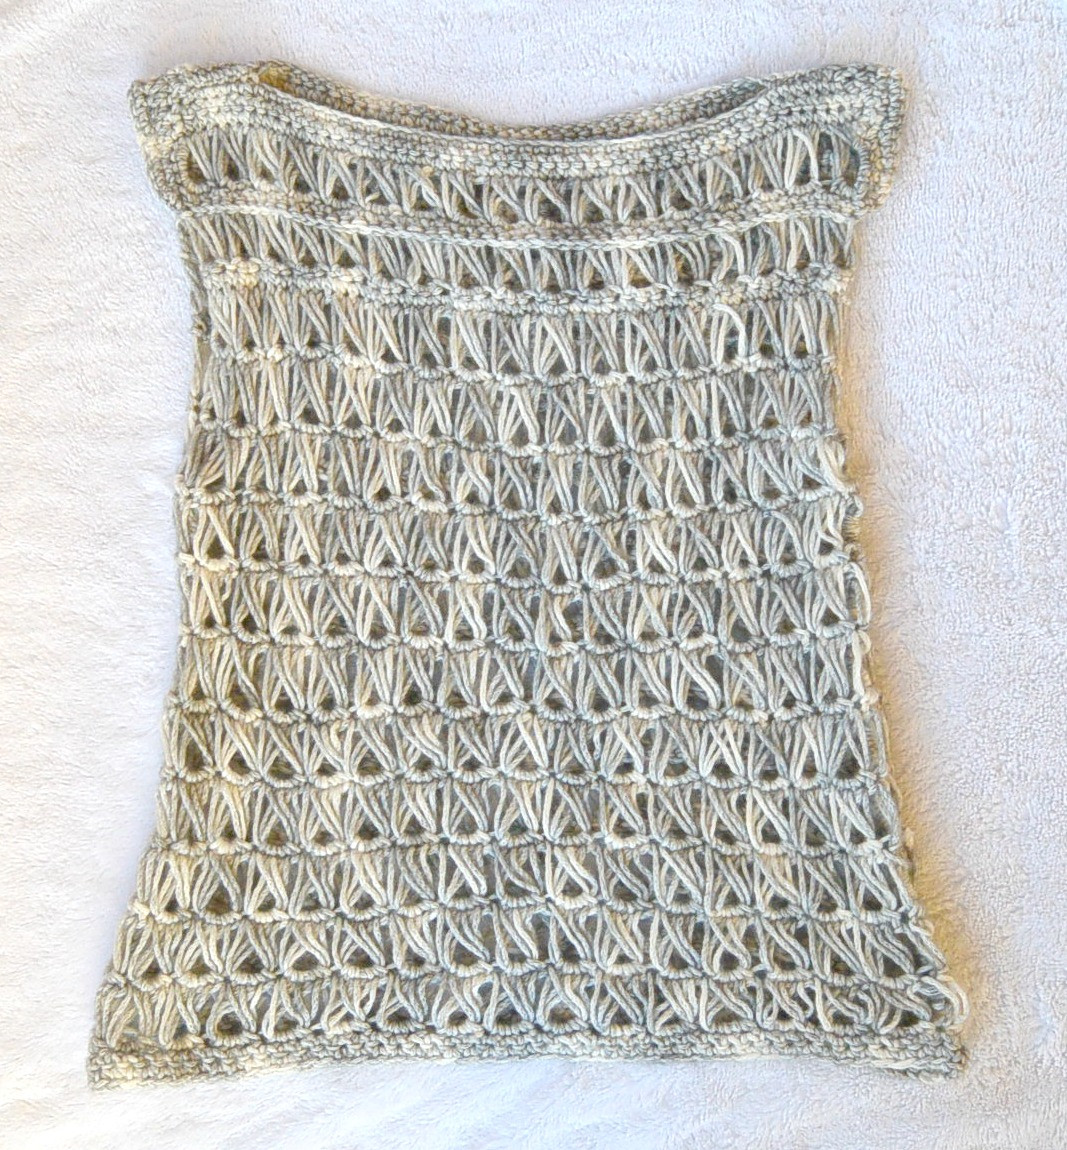 Crochet top Pattern New Broomstick Lace Crochet top – Mama In A Stitch Of Delightful 43 Pics Crochet top Pattern